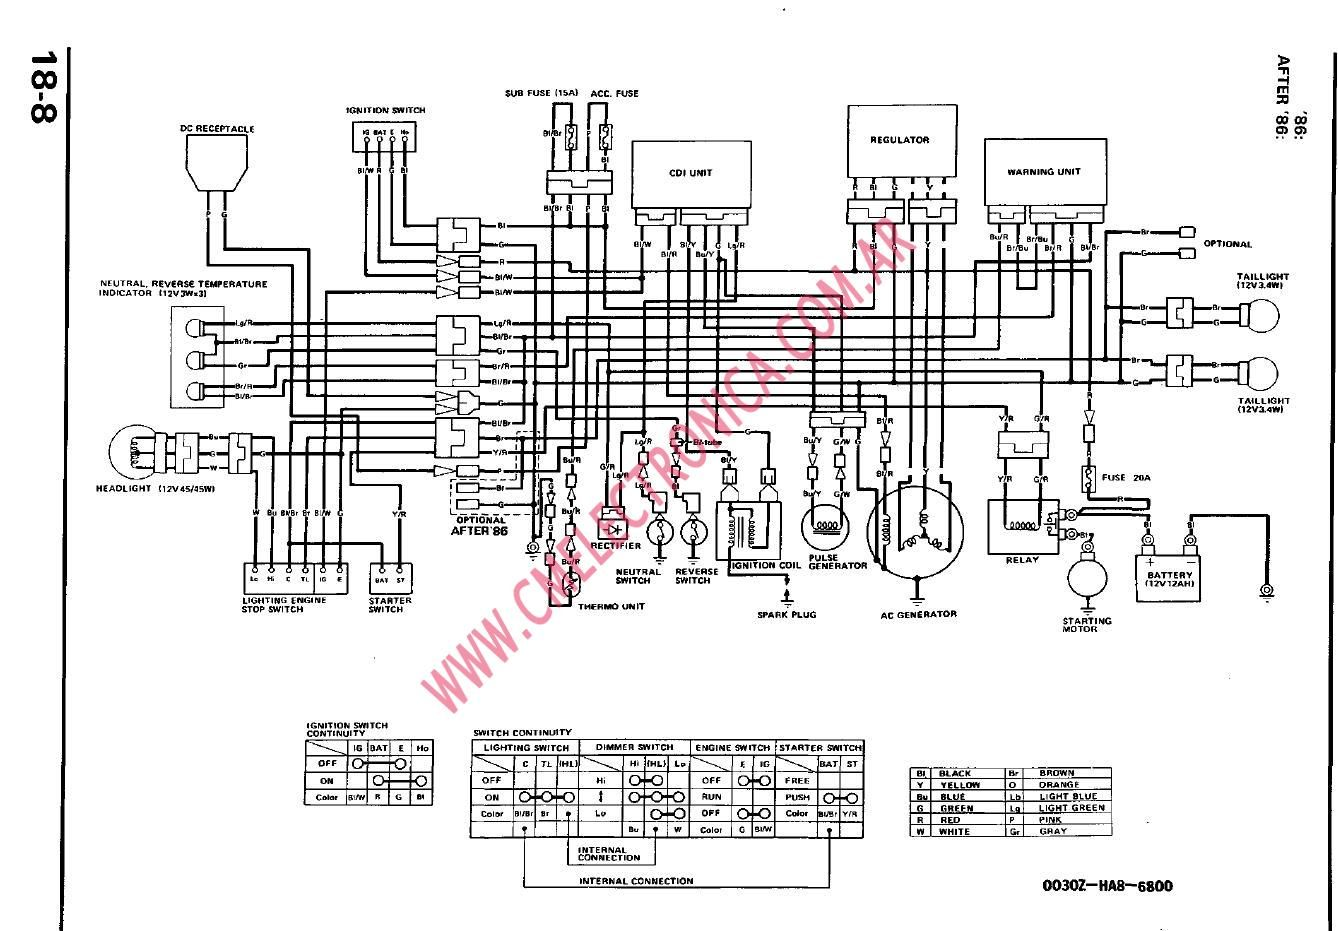 trx 250 wiring diagram example electrical wiring diagram u2022 rh cranejapan co 1985 honda trx 250 wiring diagram 1985 honda trx 250 wiring diagram